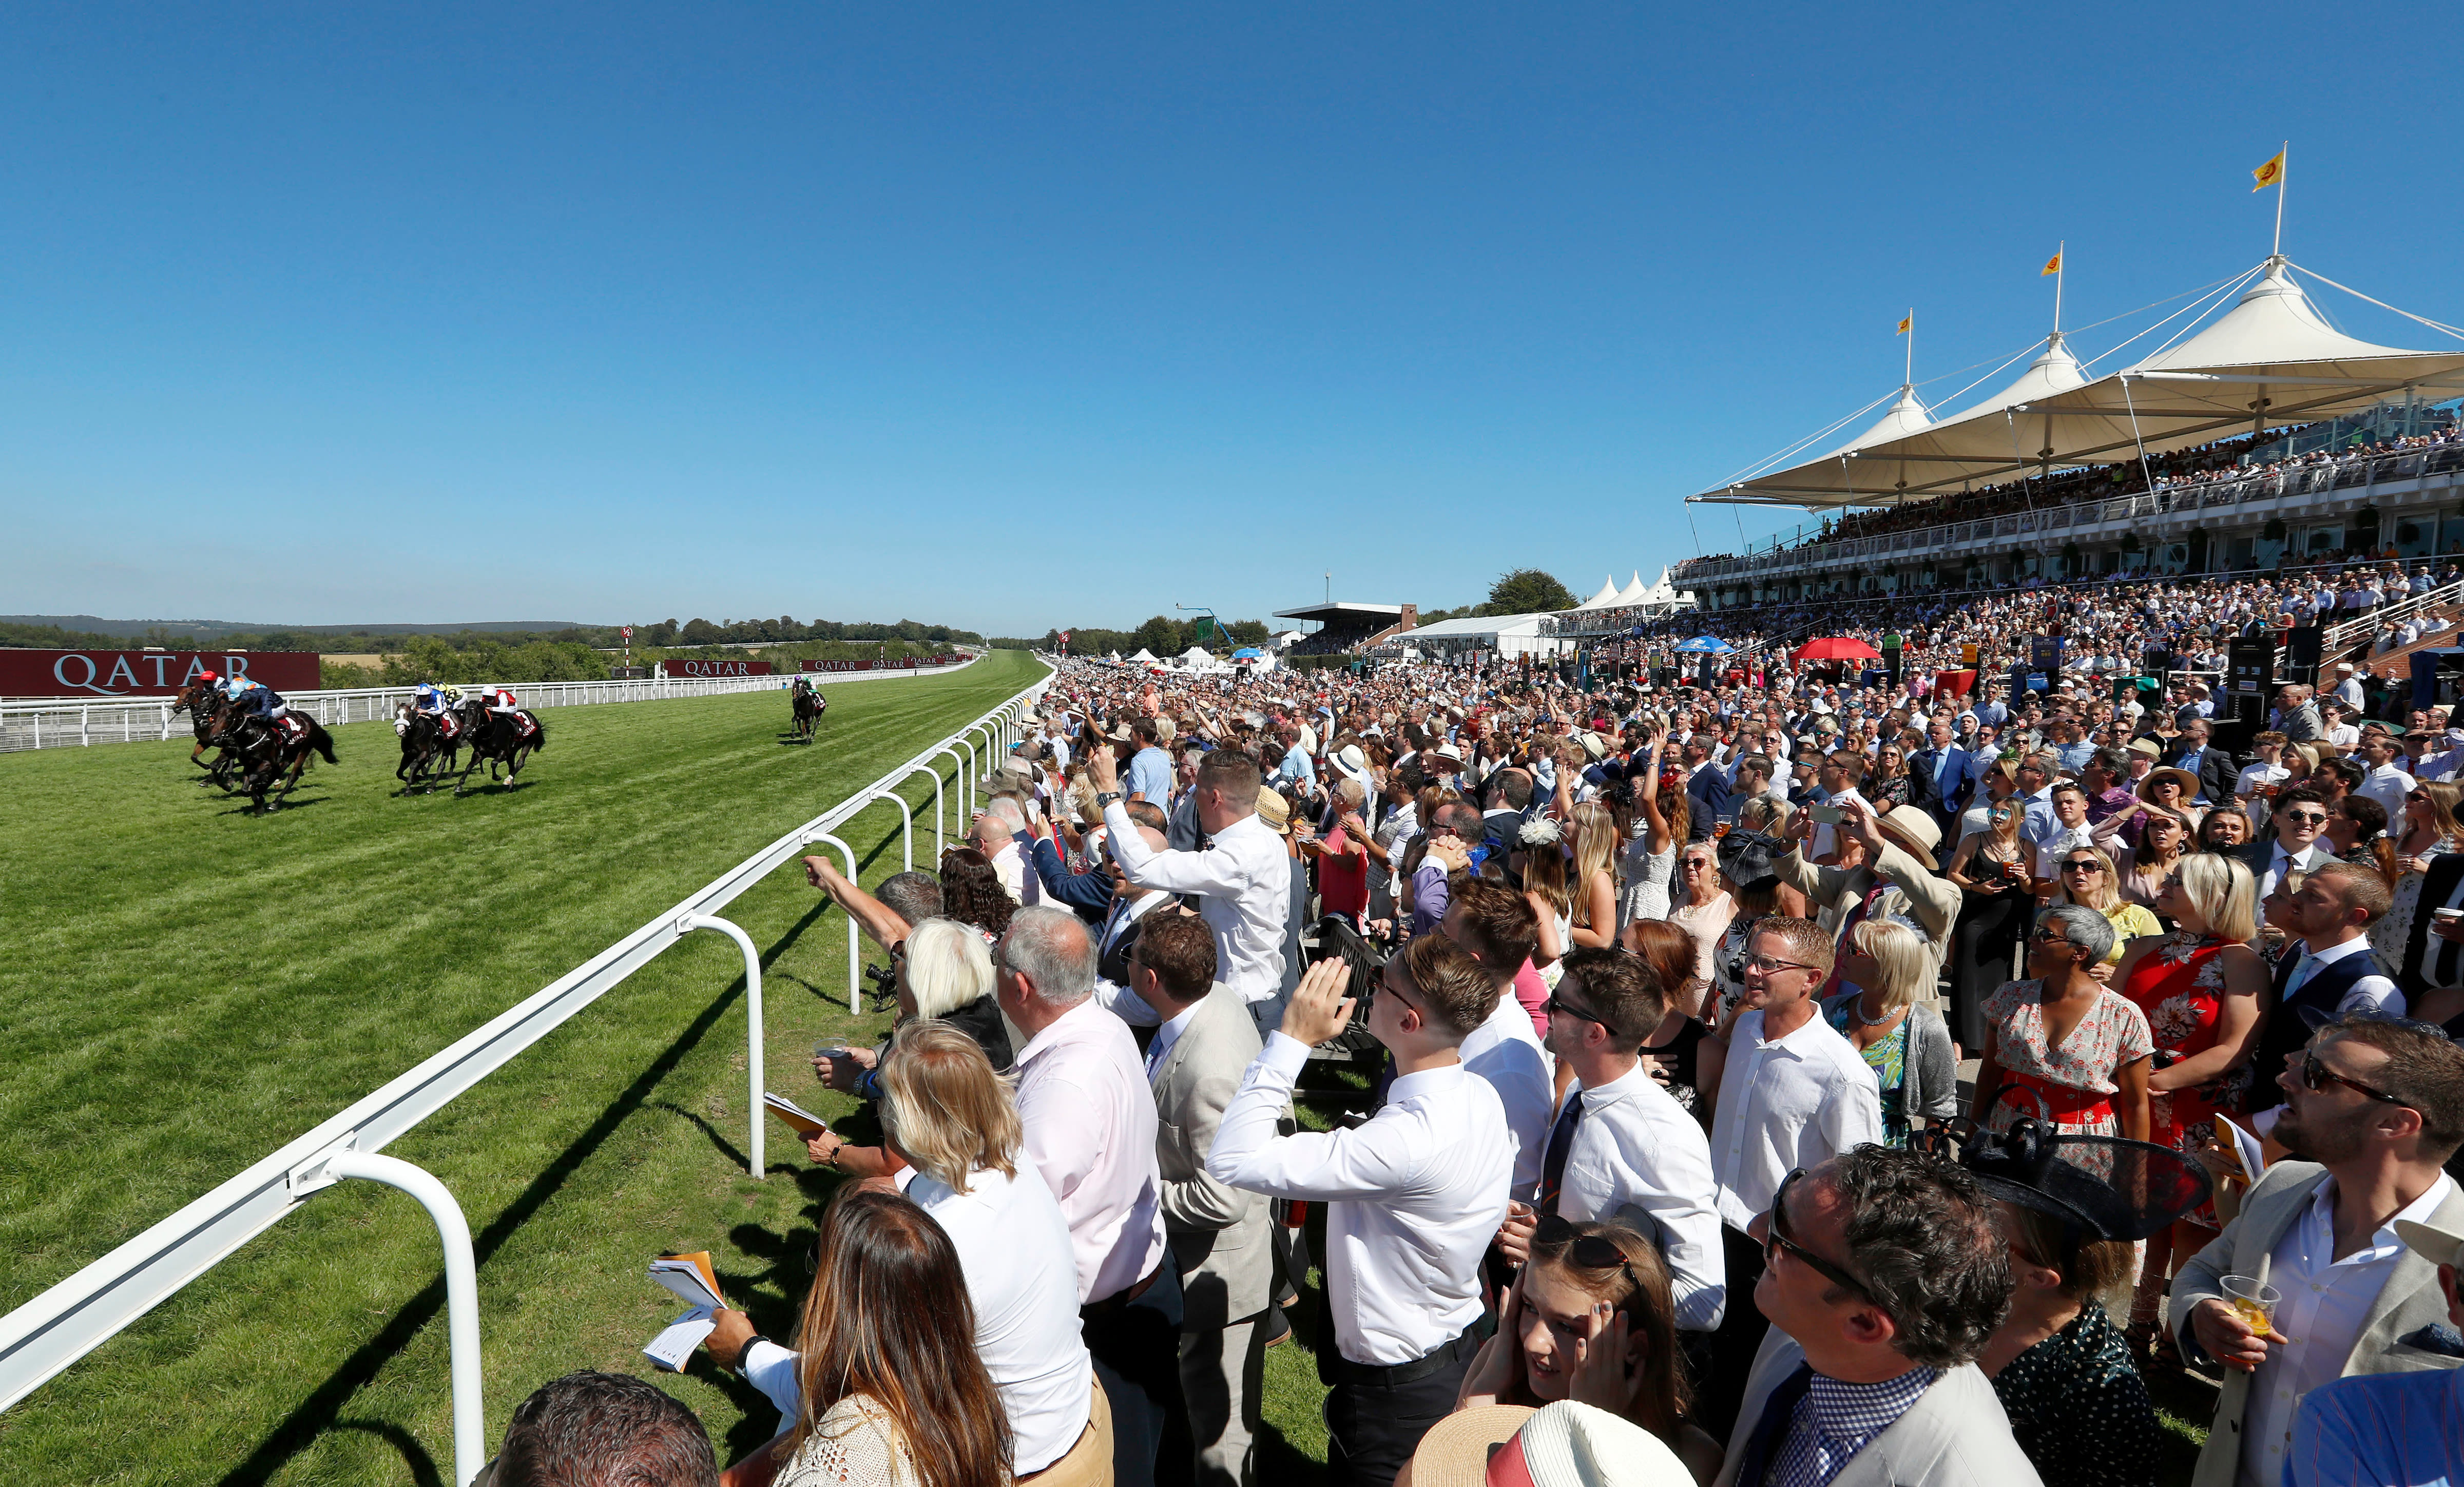 Annual members and their guests will be able to attend the final day of Glorious Goodwood